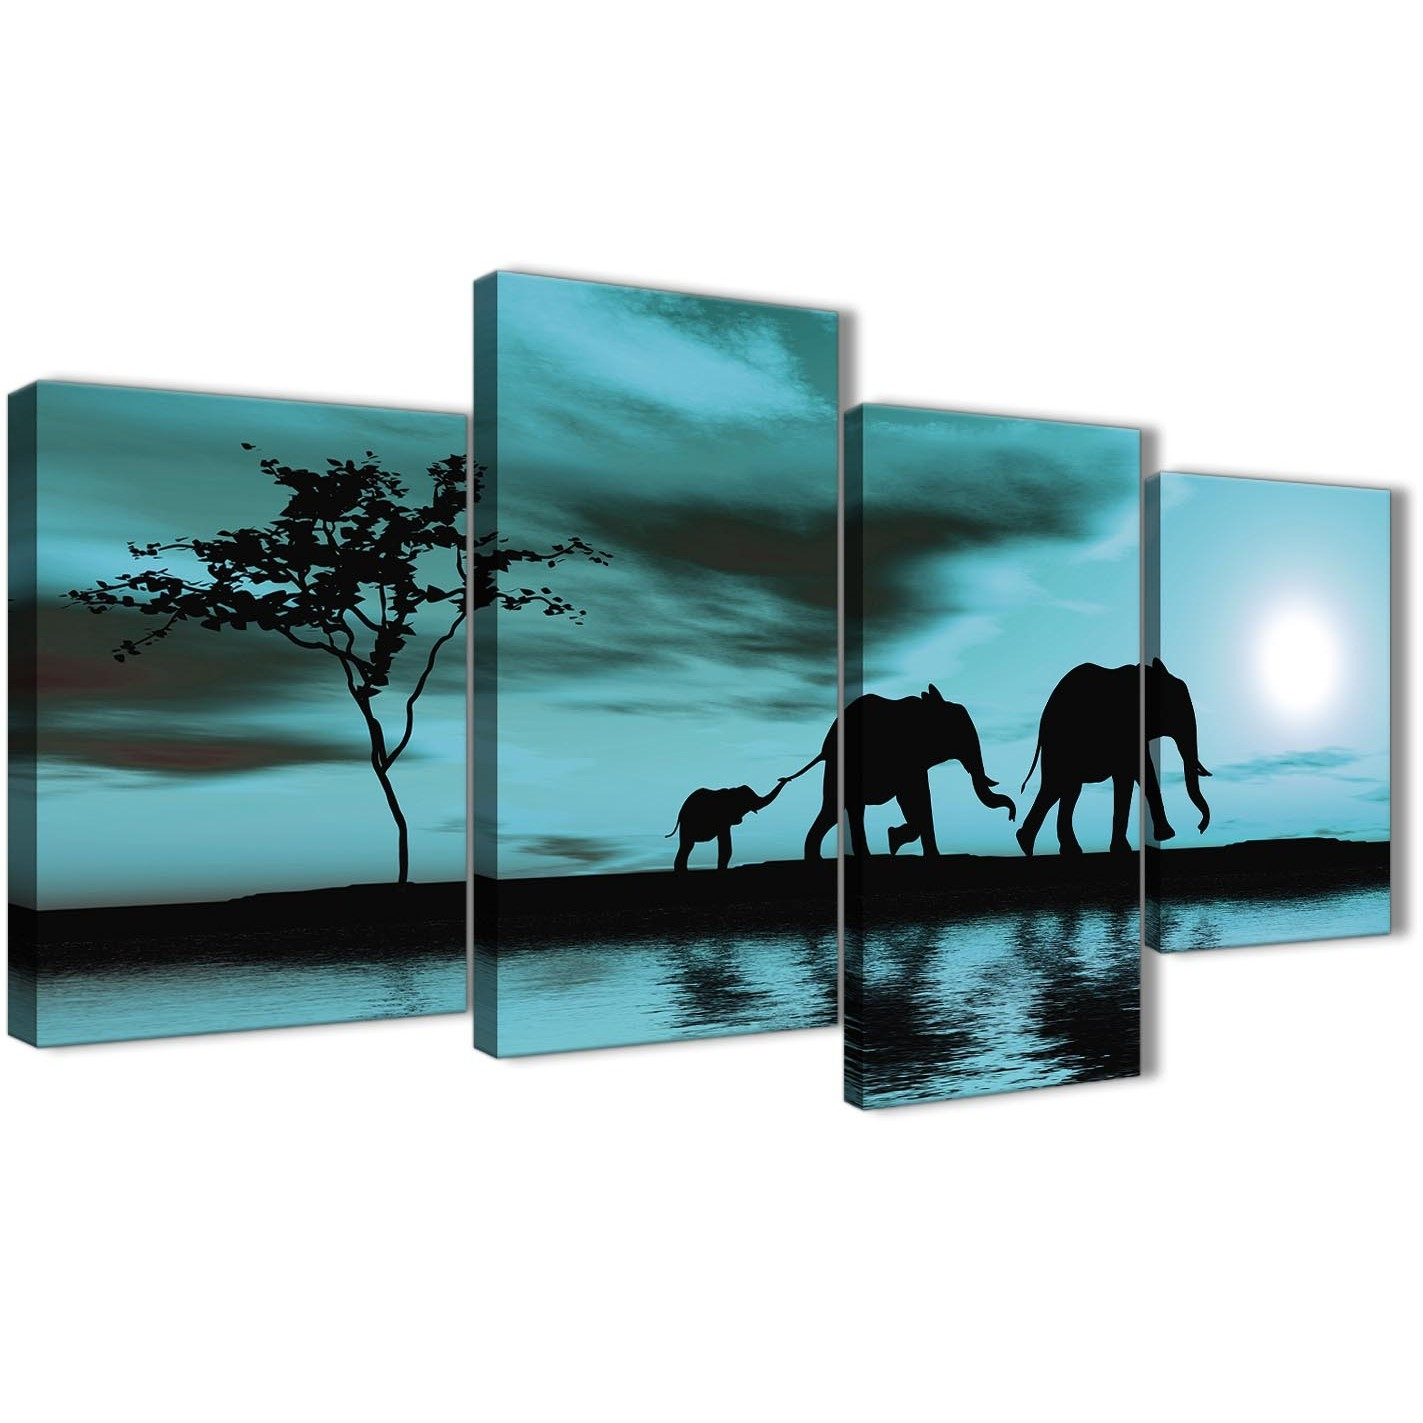 Large Teal African Sunset Elephants Canvas Wall Art Print – Multi 4 With Recent Oversized Teal Canvas Wall Art (View 12 of 20)